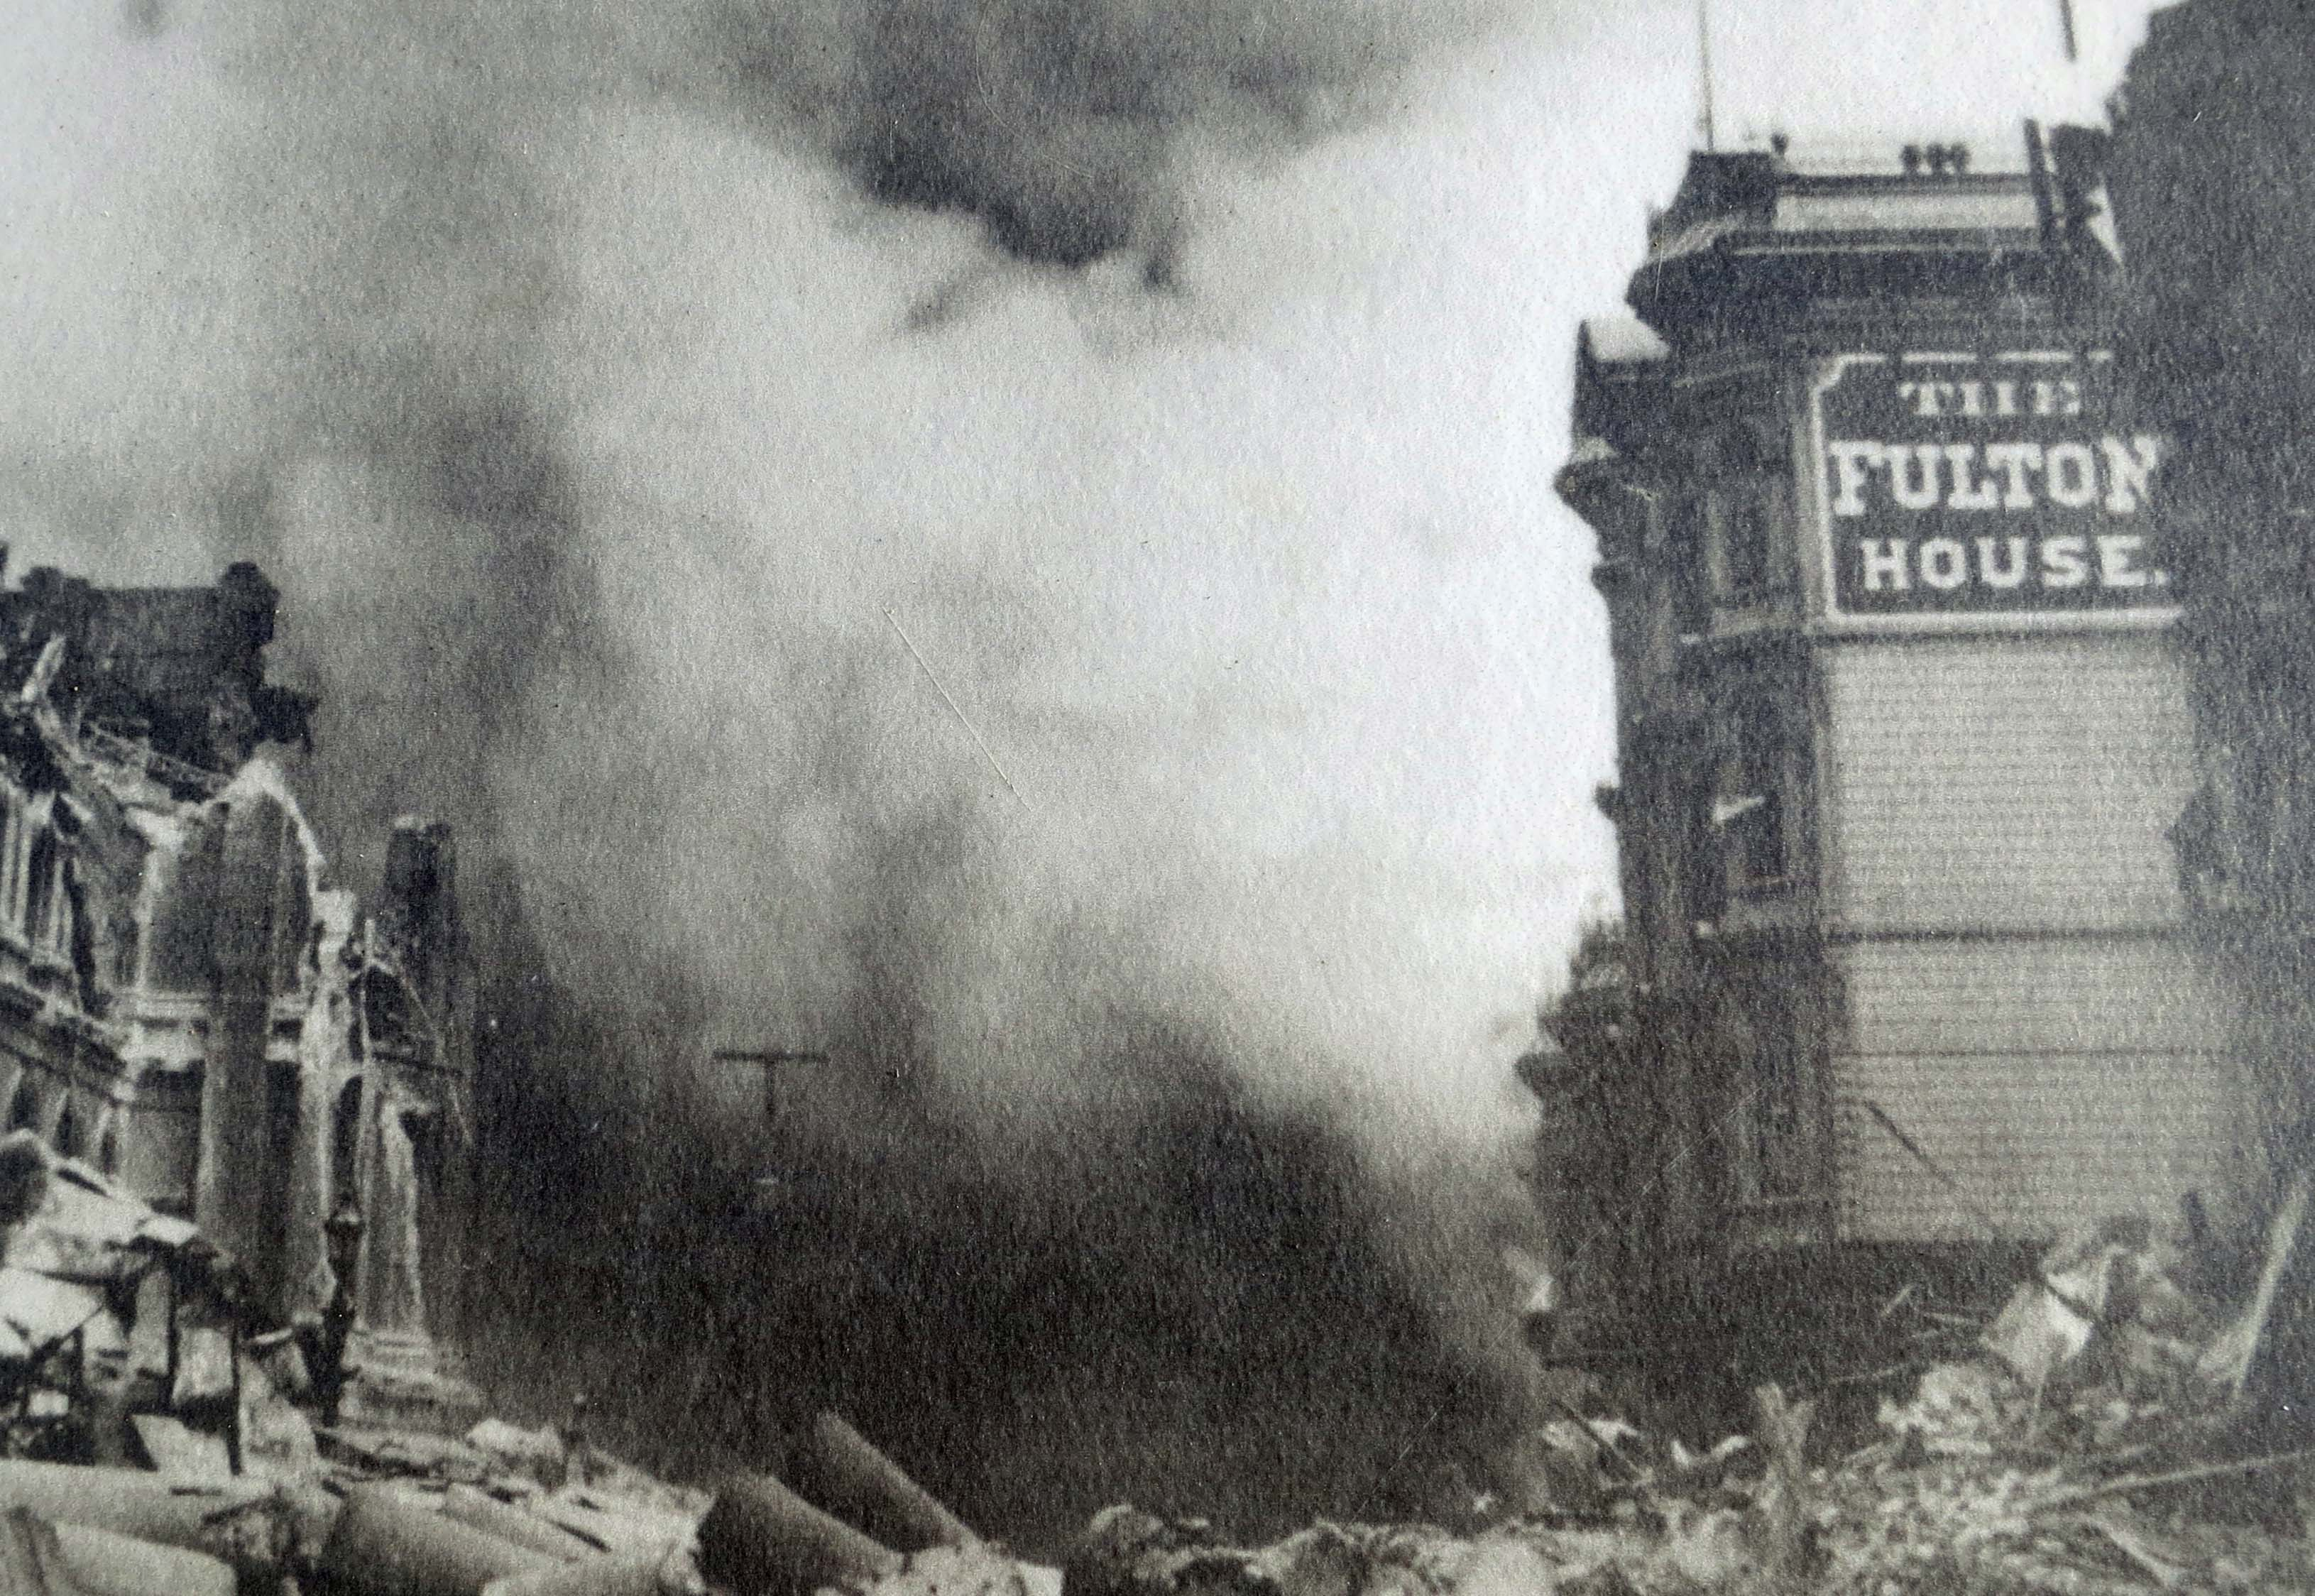 And this photo from the Earthquake Trail shows the result of the 1906 earthquake on San Francisco.